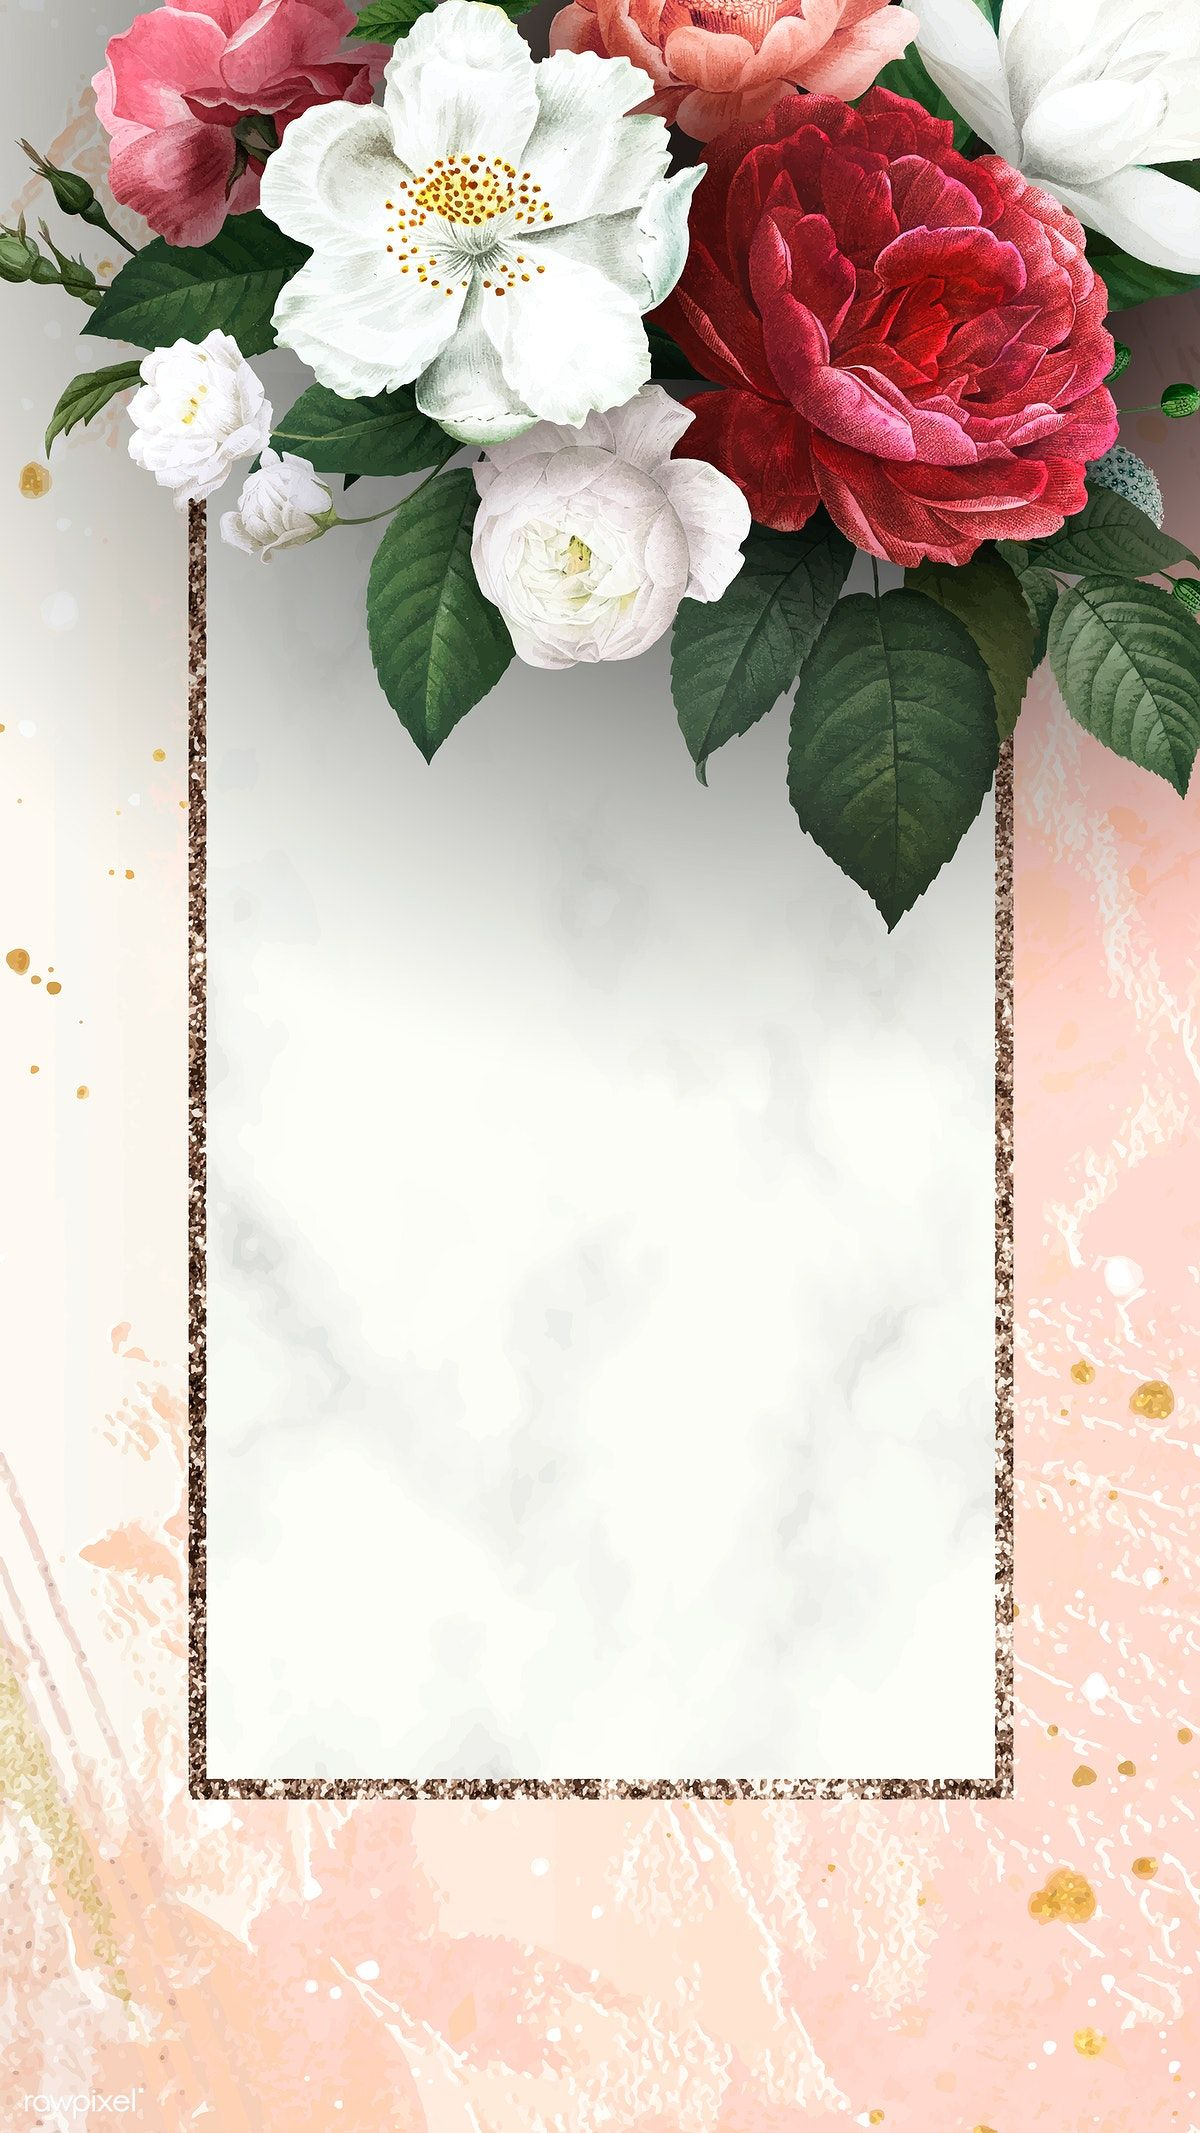 Pin By Yellow Flower On مطويات In 2021 Peach Background Floral Poster Flower Frame